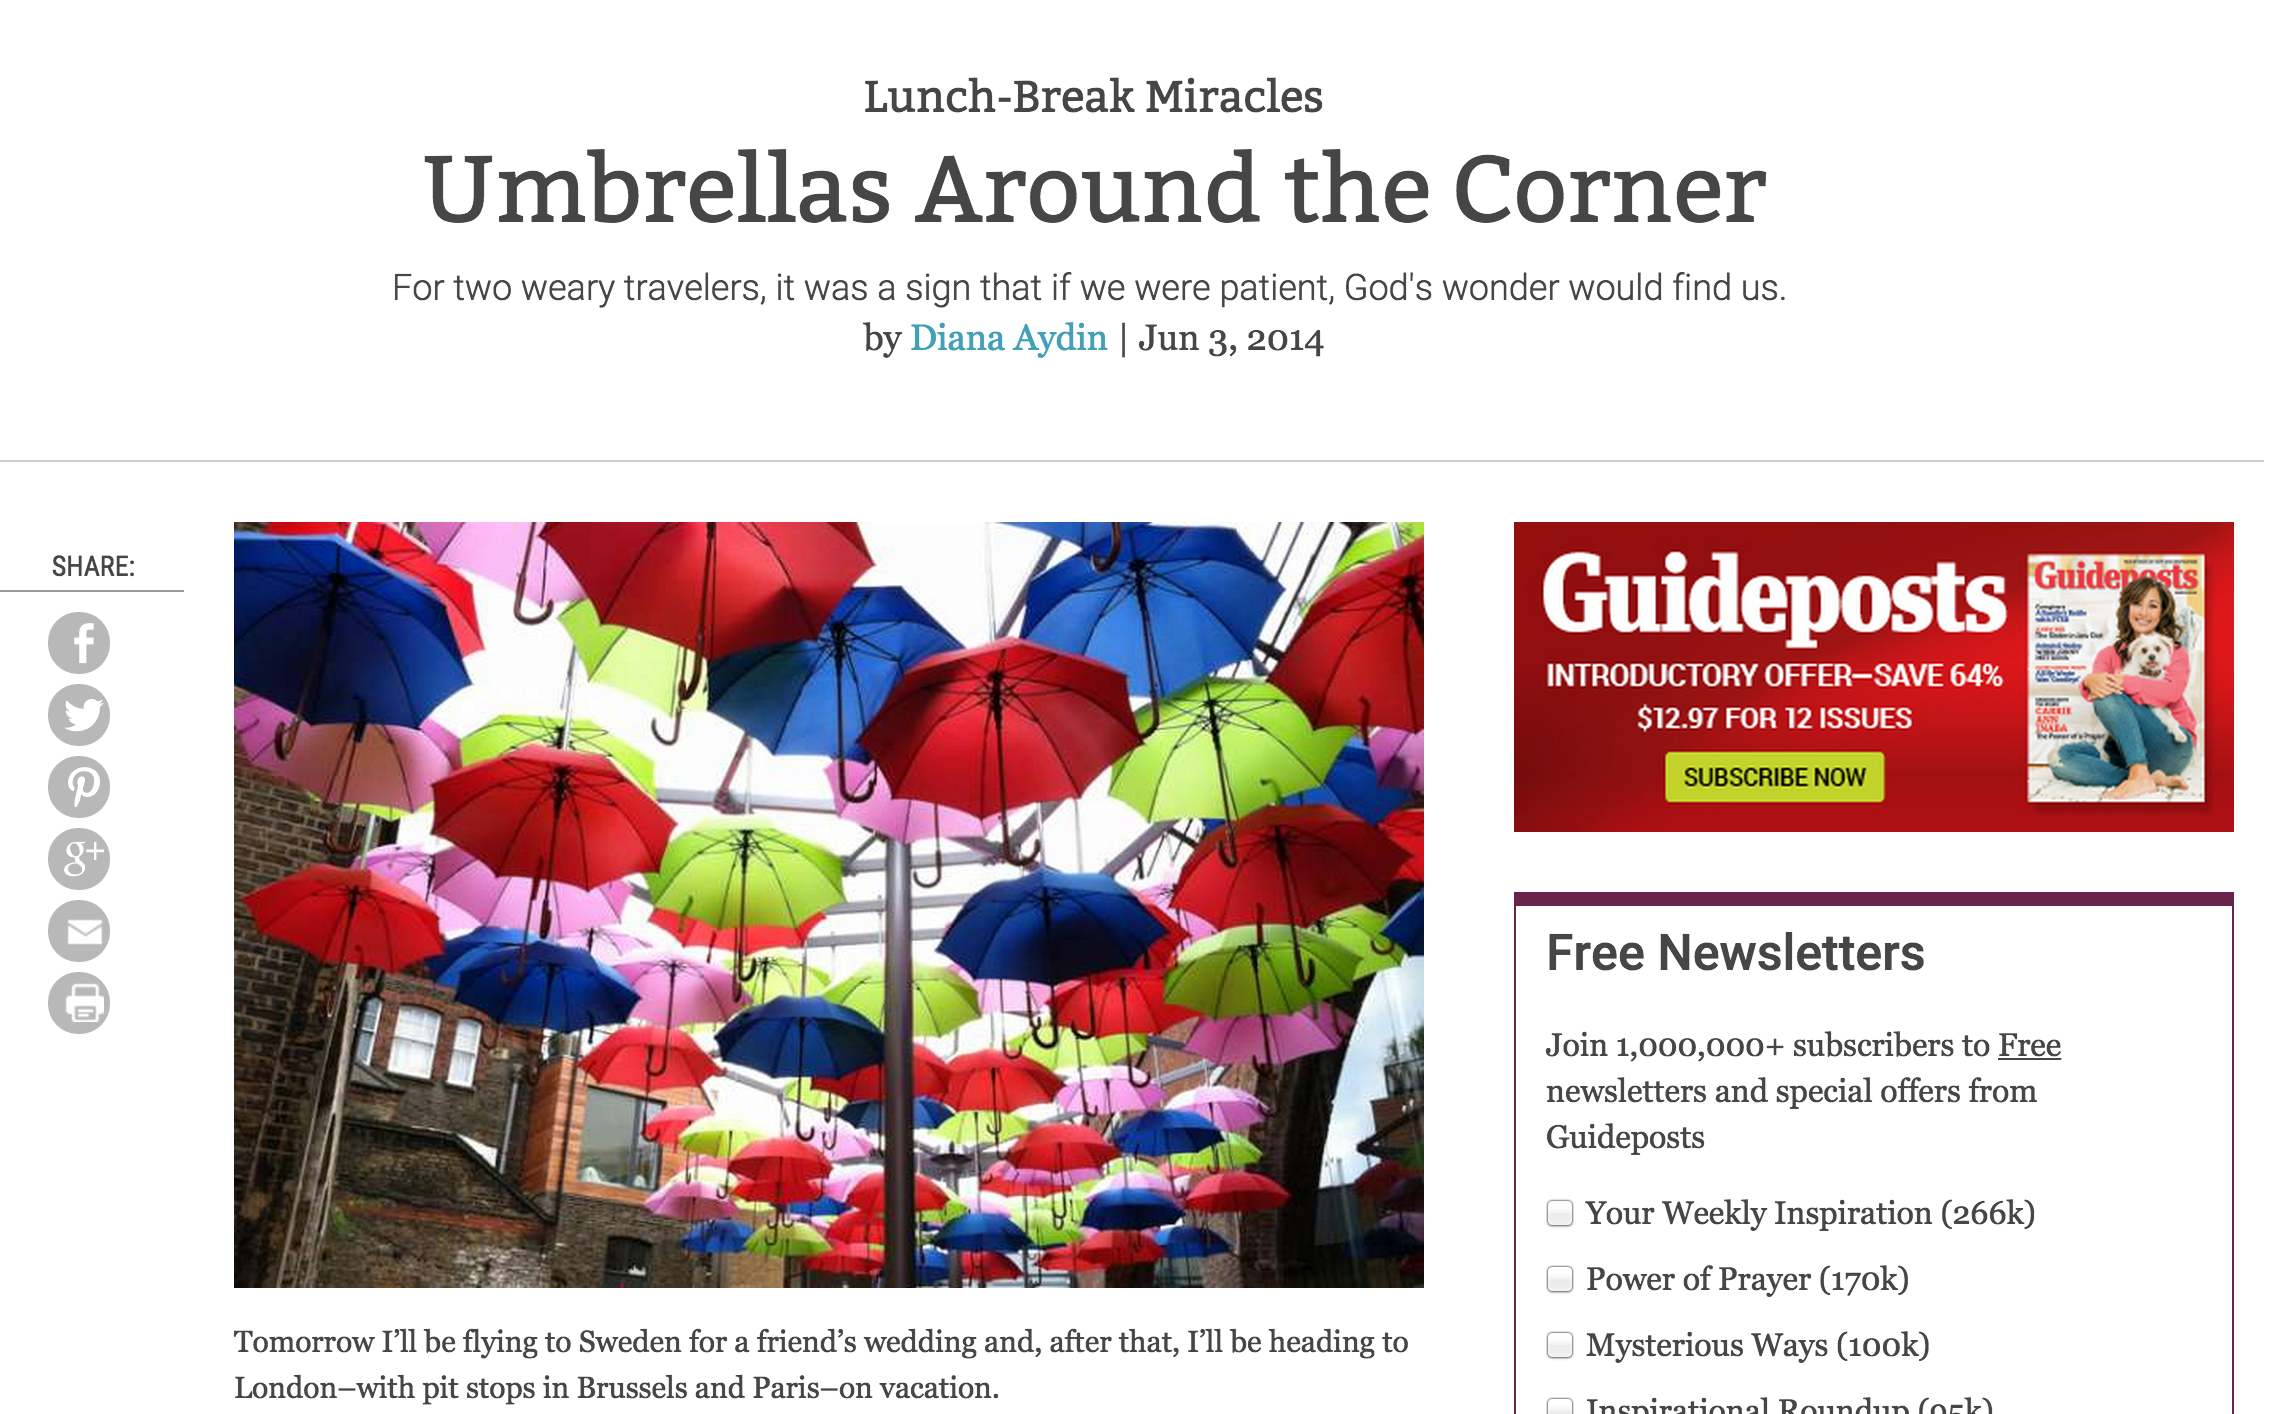 Umbrellas Around the Corner